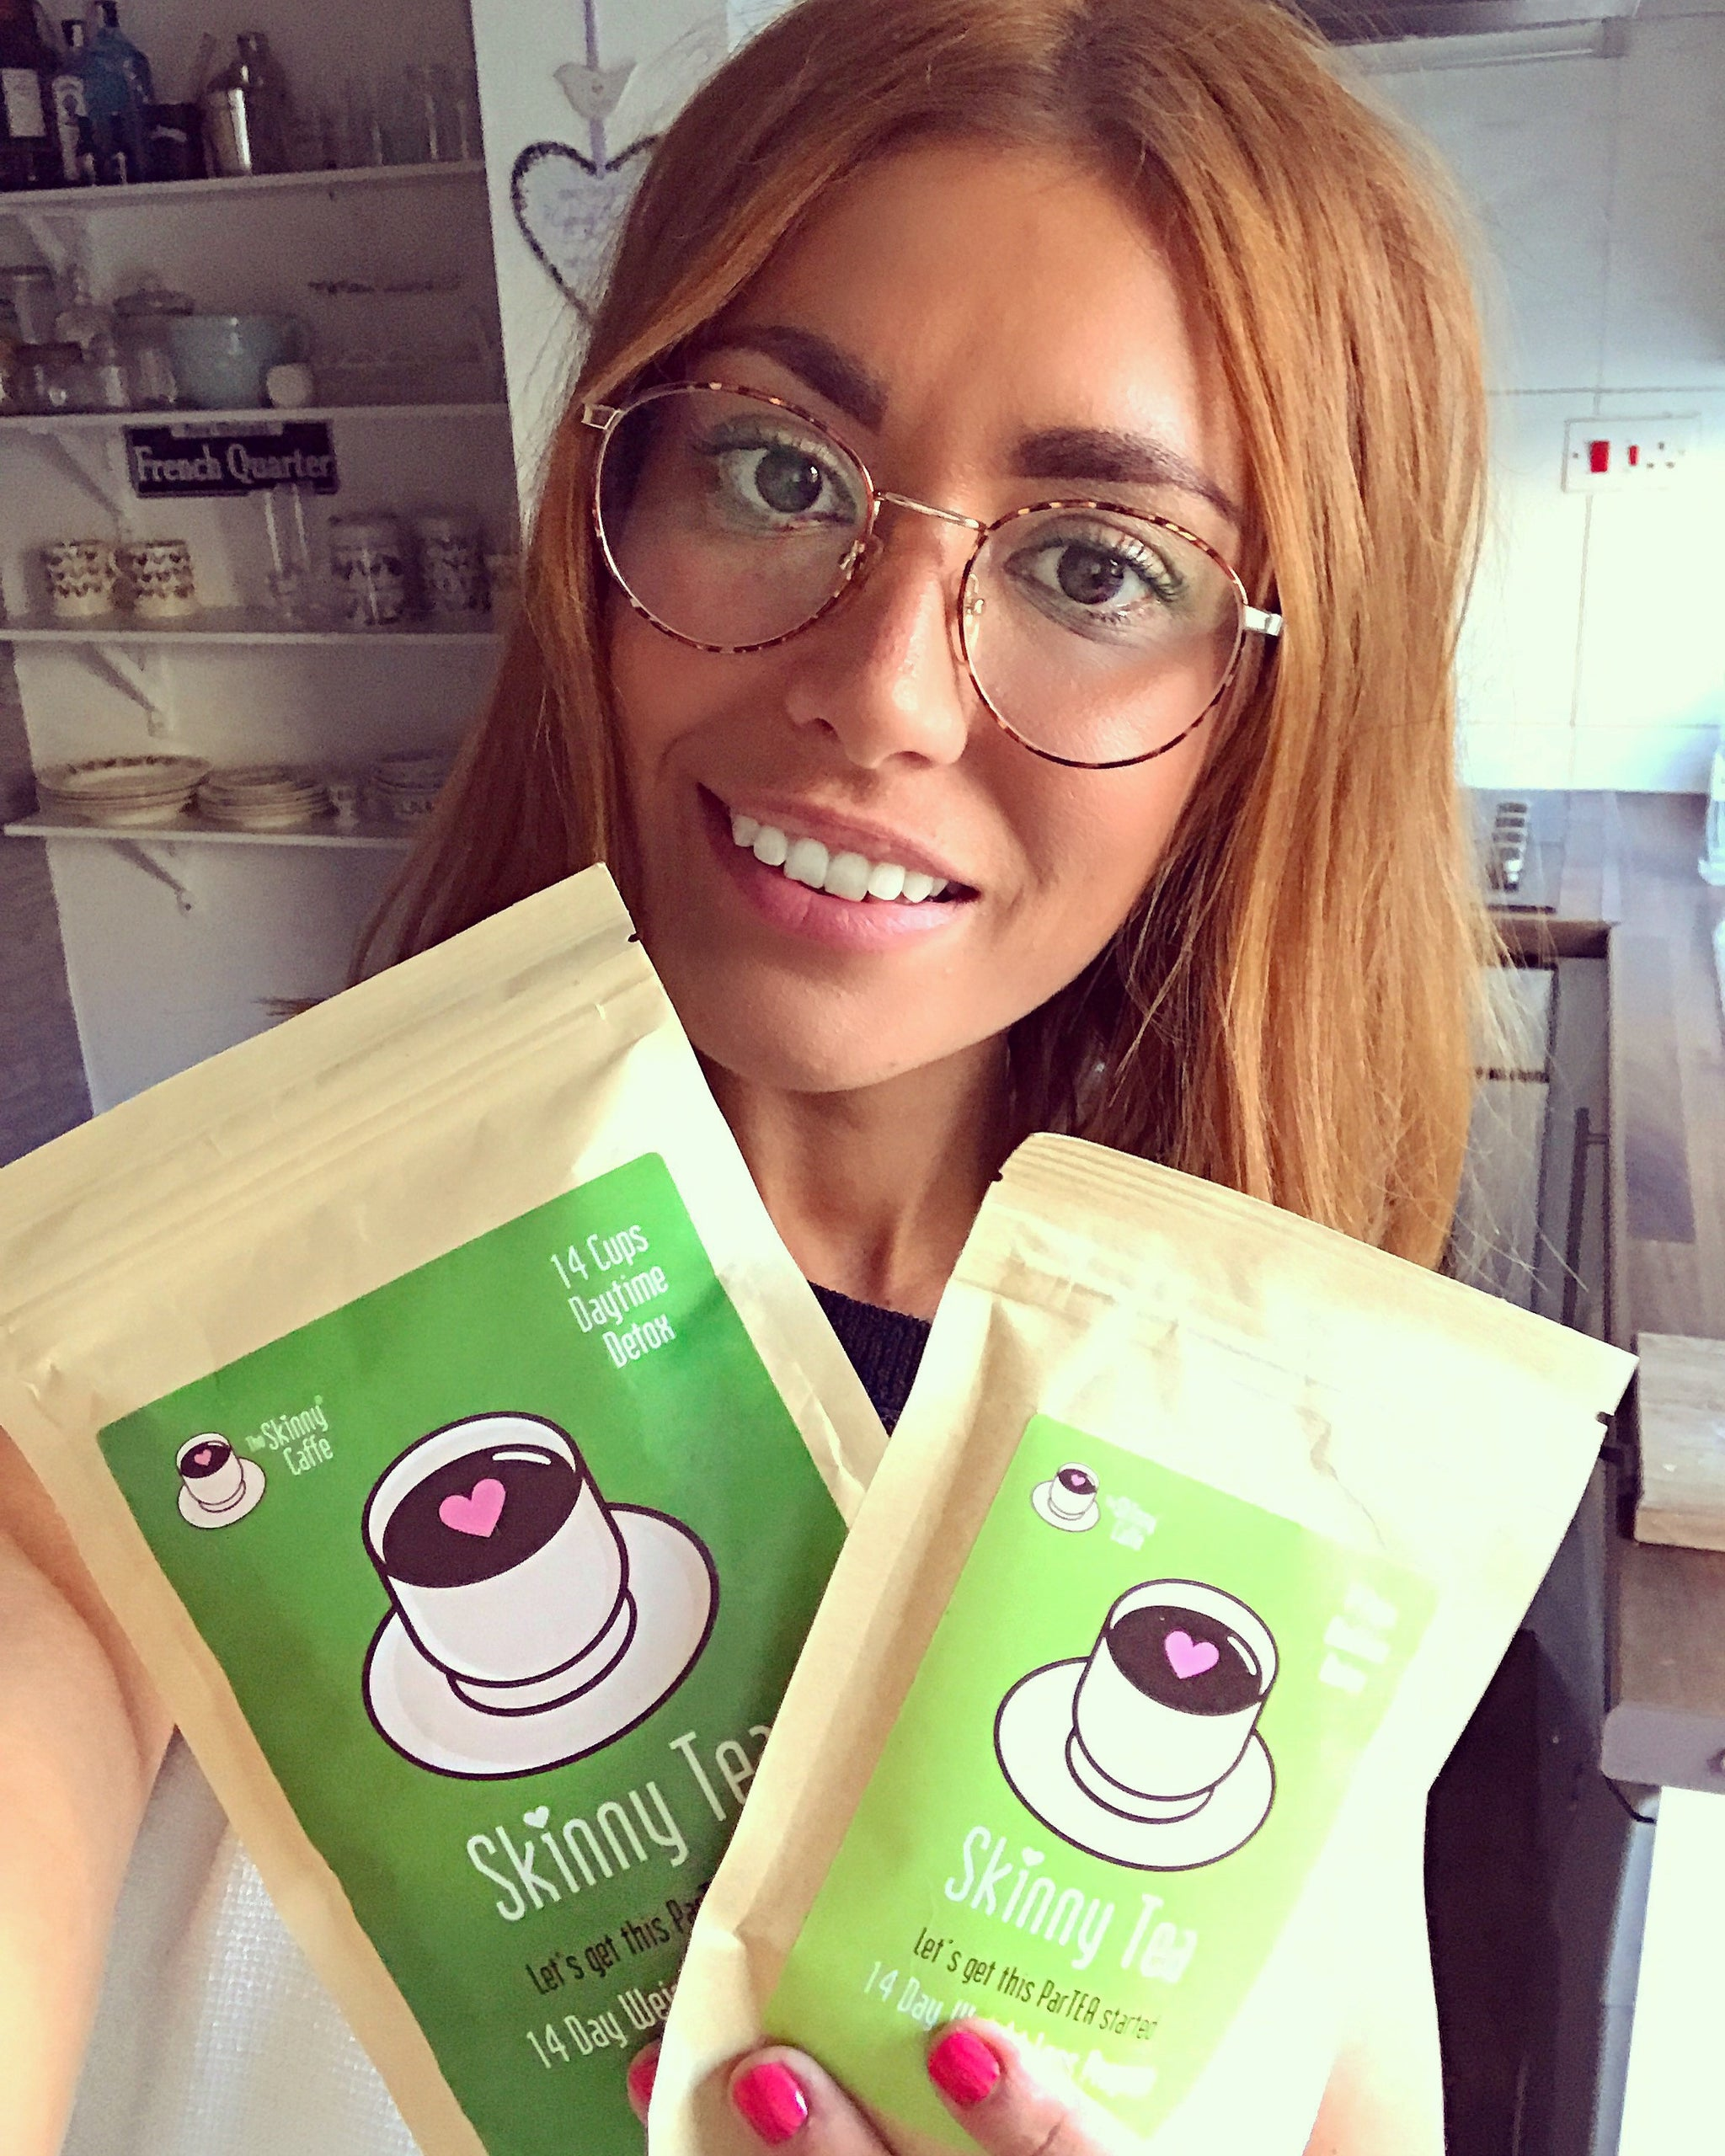 The Skinny Caffe Minteatox Review By Danielle French